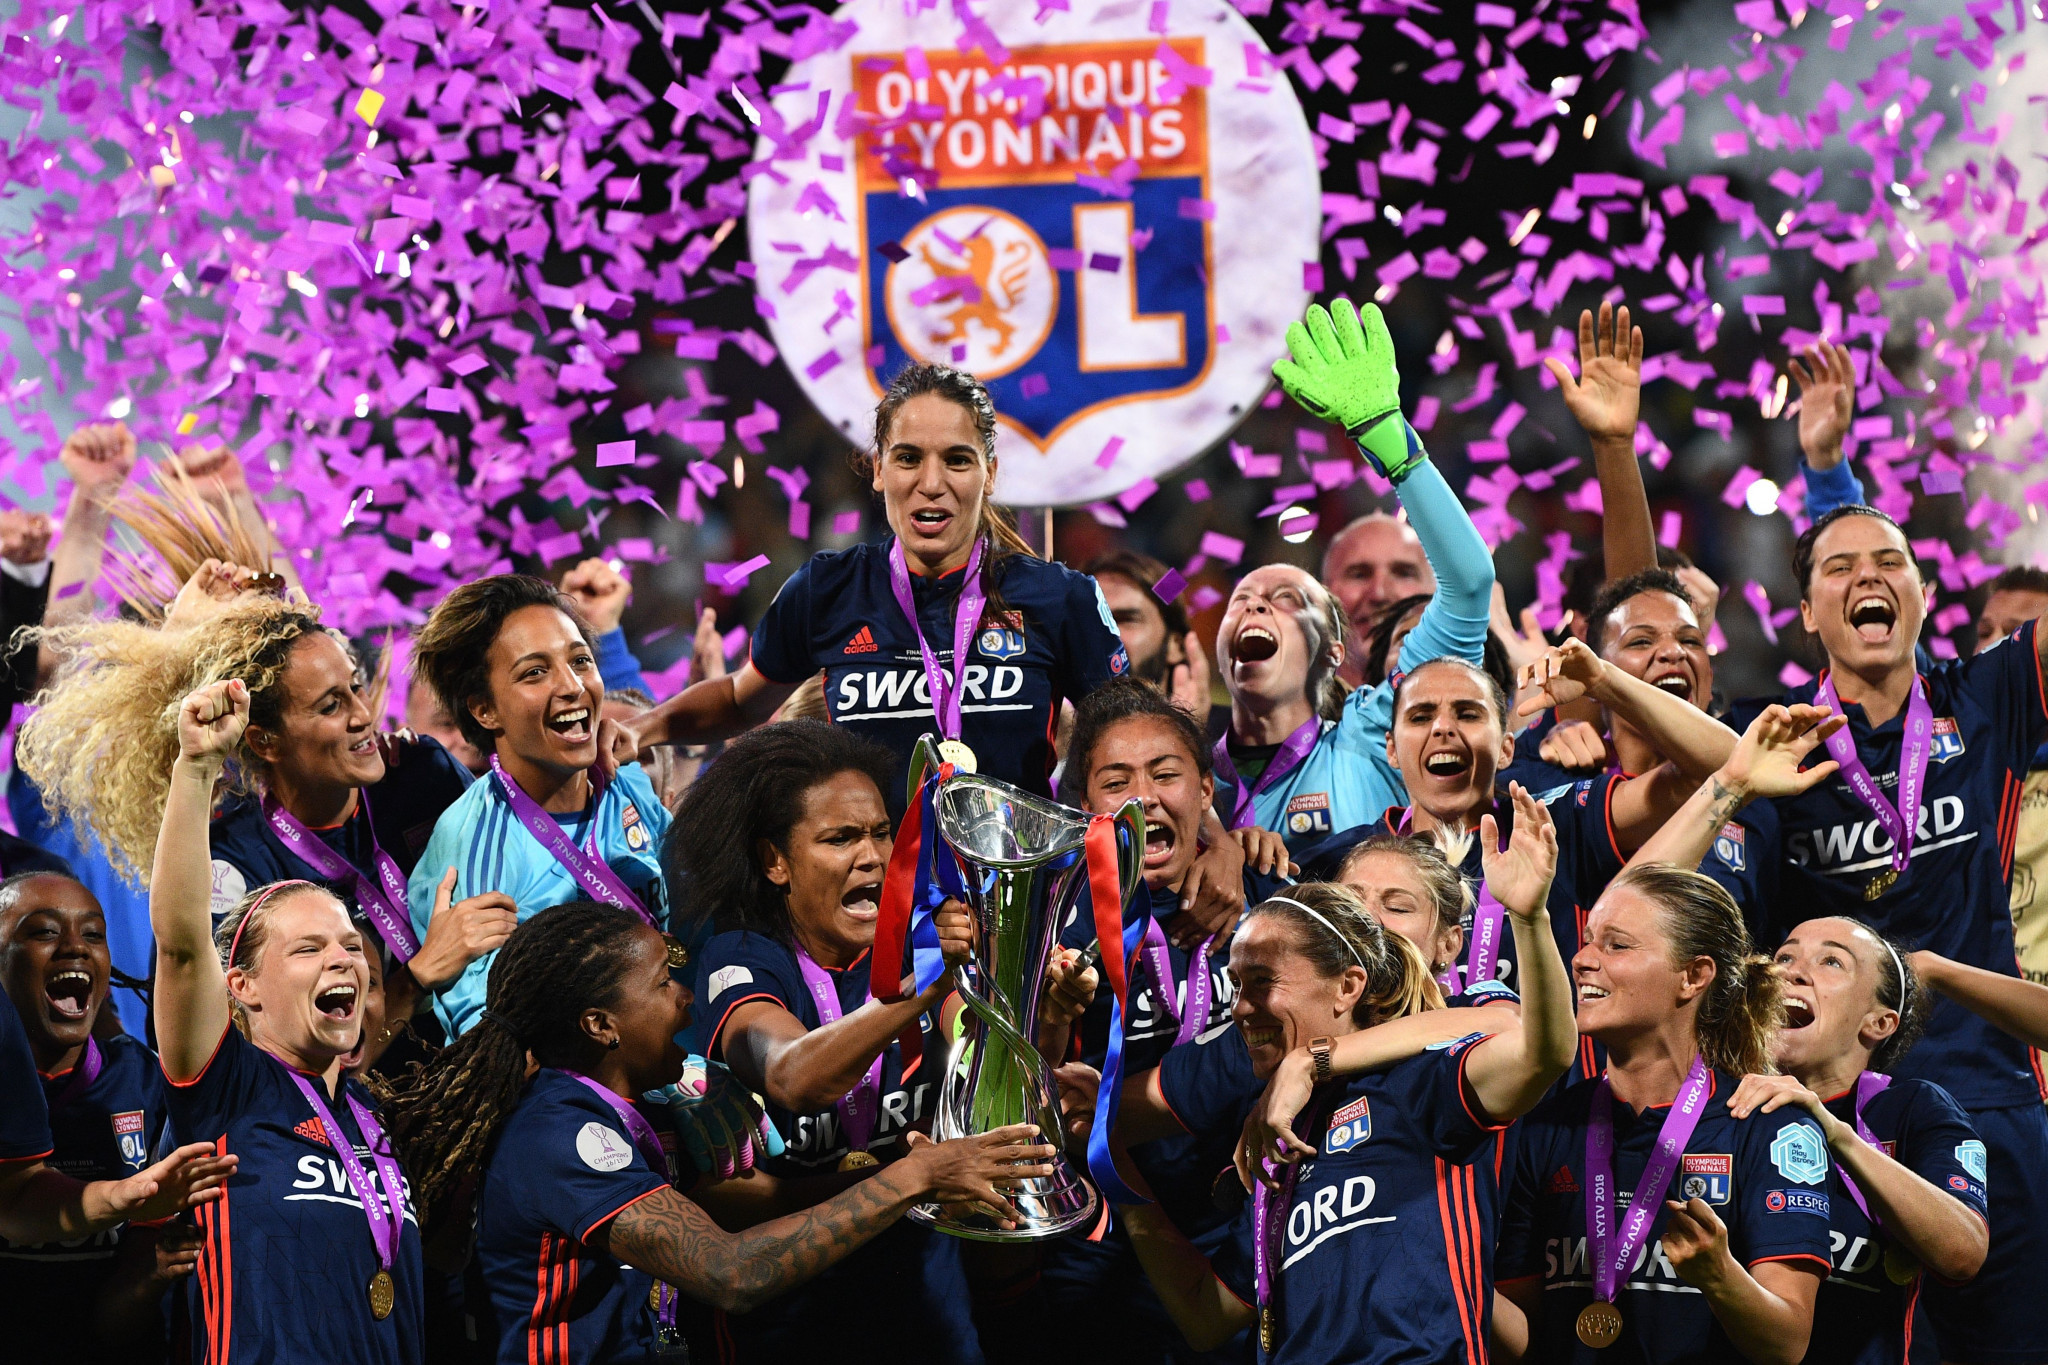 UEFA Women's Champions League victors Olympique Lyon of France will receive the second-highest payout from FIFA for the Women's World Cup currently taking place in France ©Getty Images